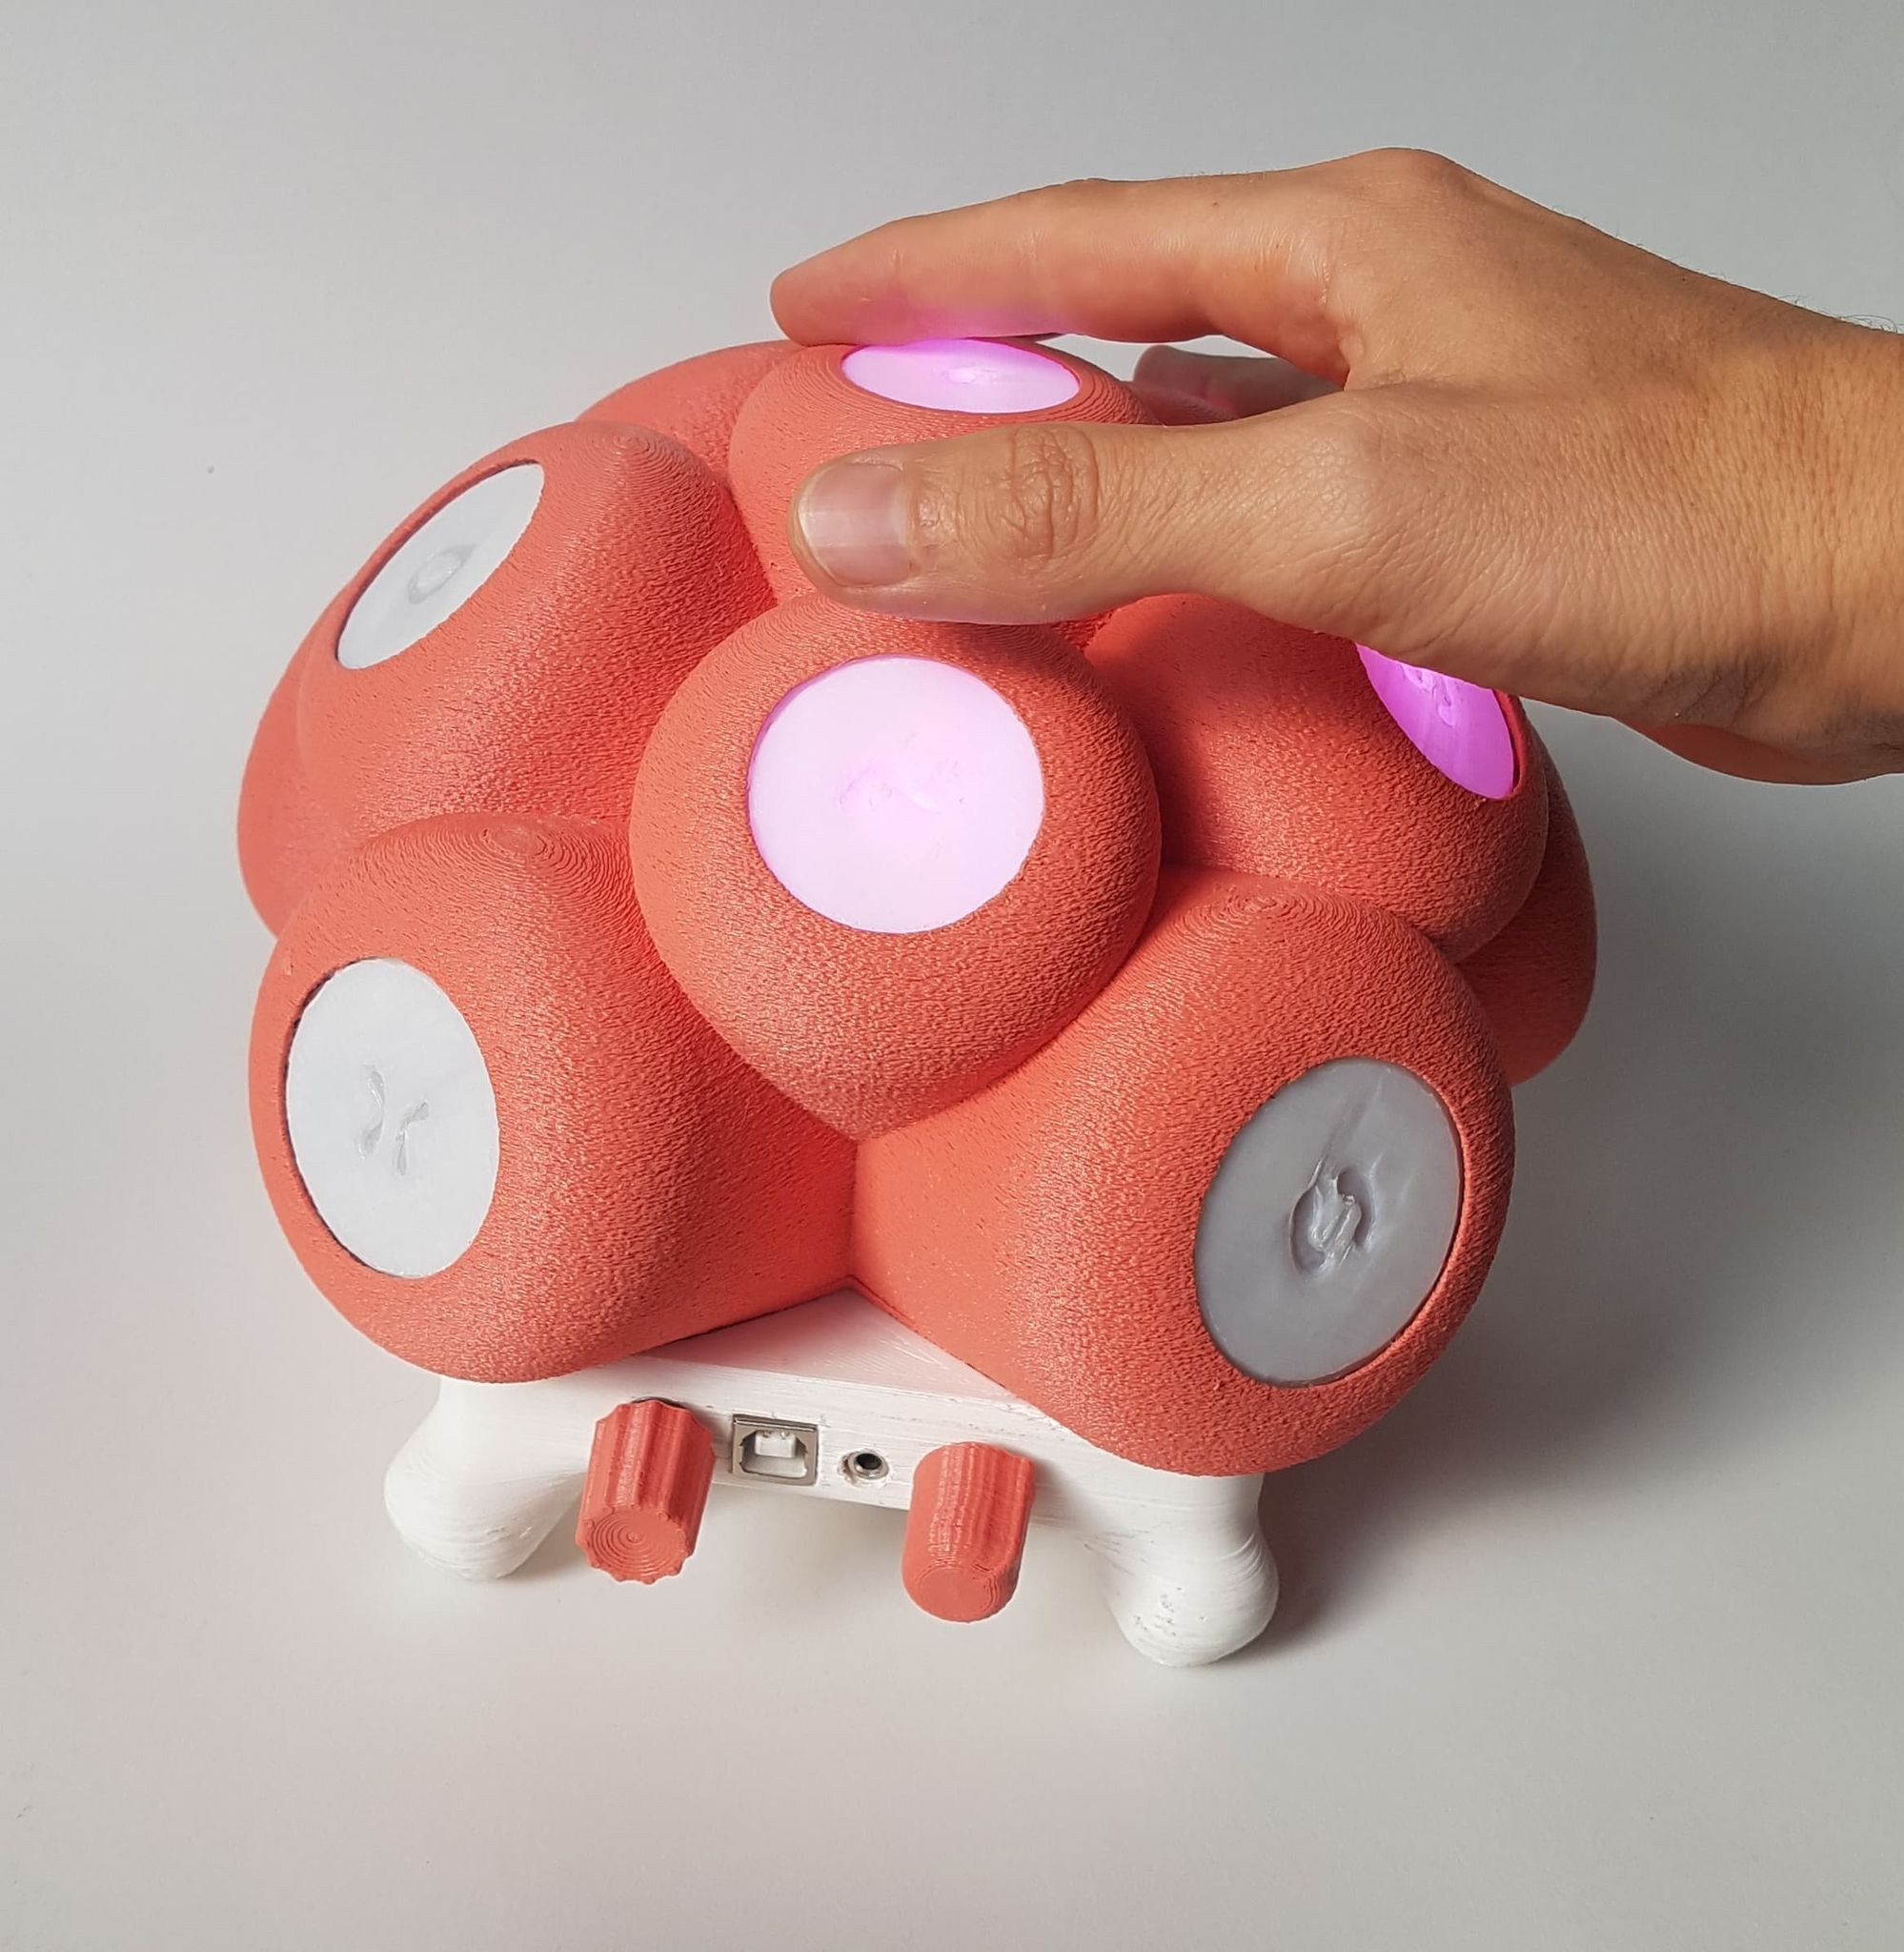 This bulbous-looking instrument is made for music therapy and inclusive design, too